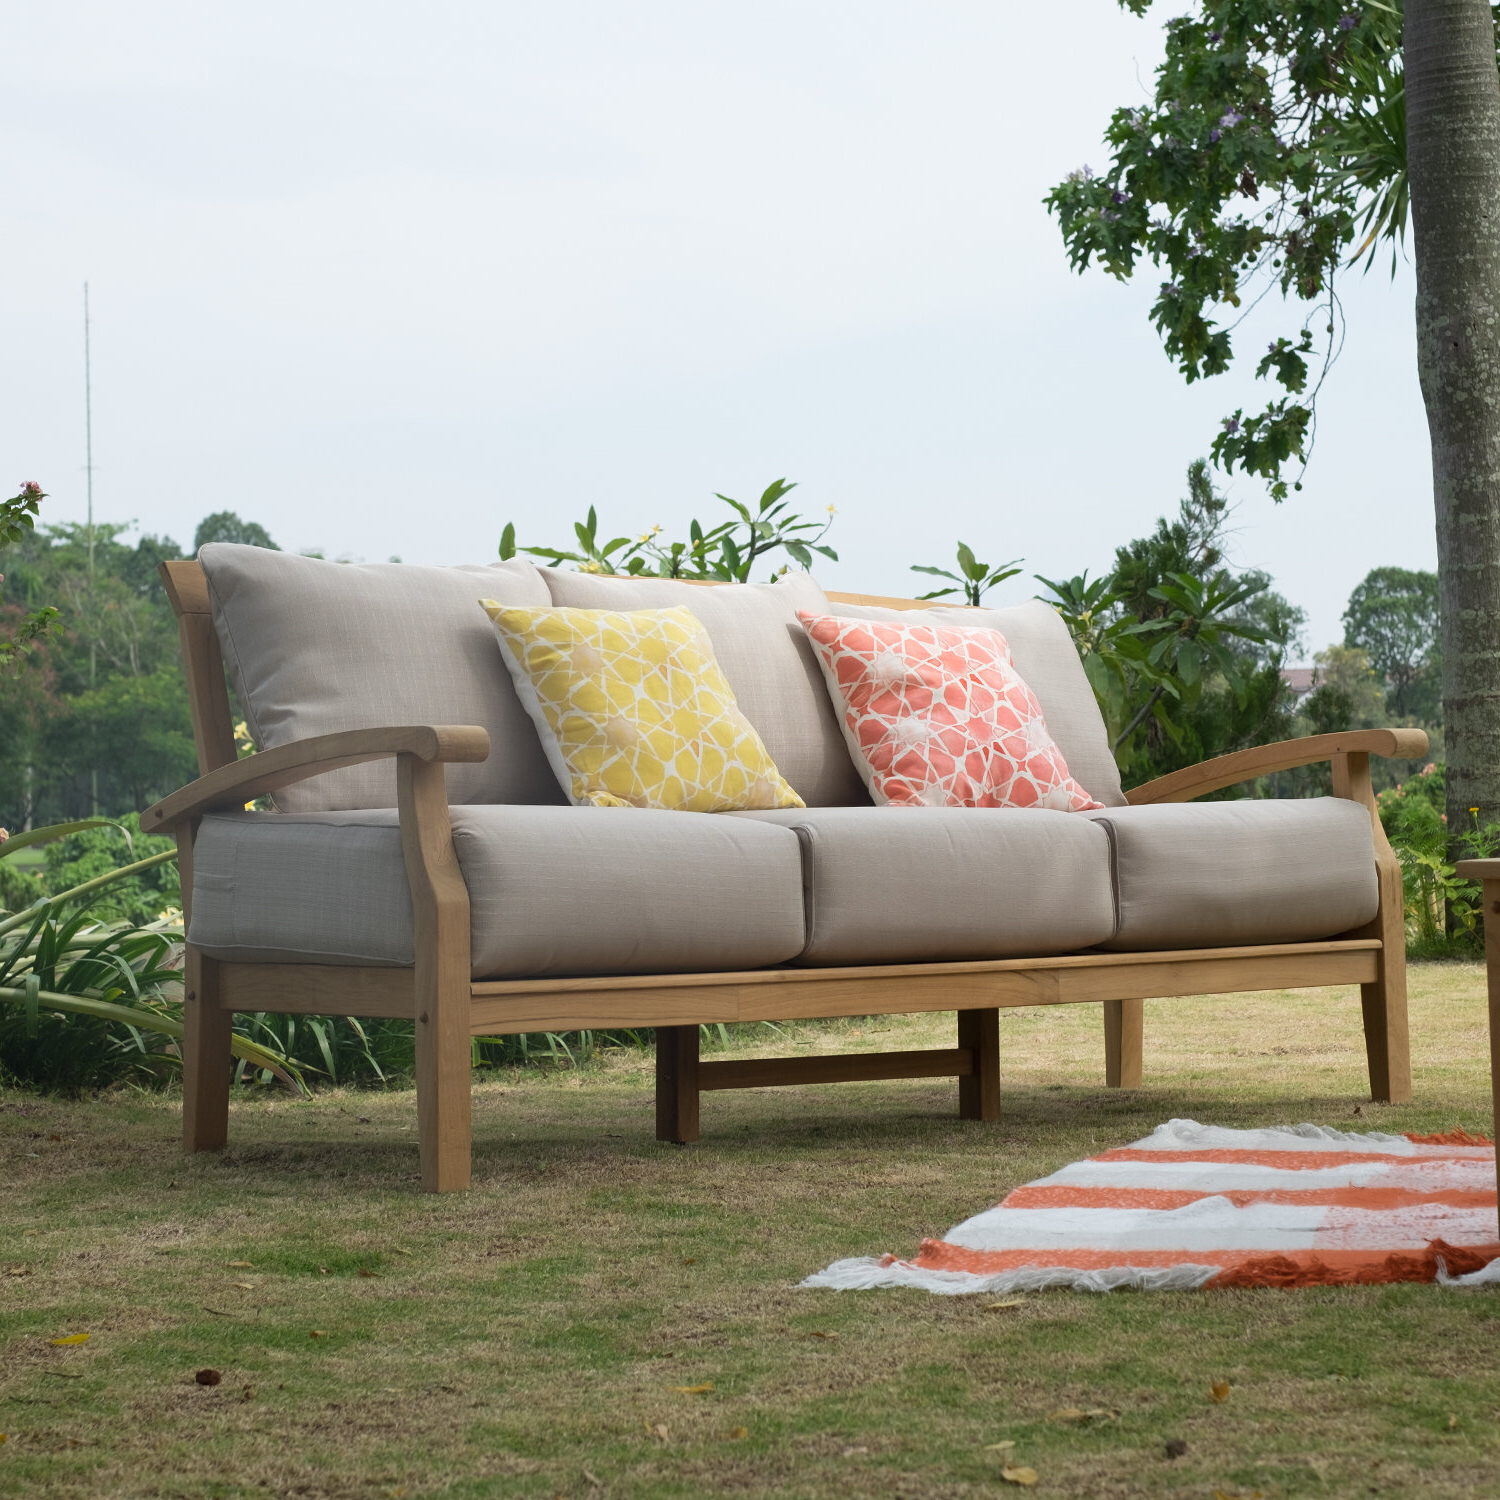 Well Known Summerton Teak Patio Sofa With Cushions Inside Clary Teak Lounge Patio Daybeds With Cushion (View 12 of 20)